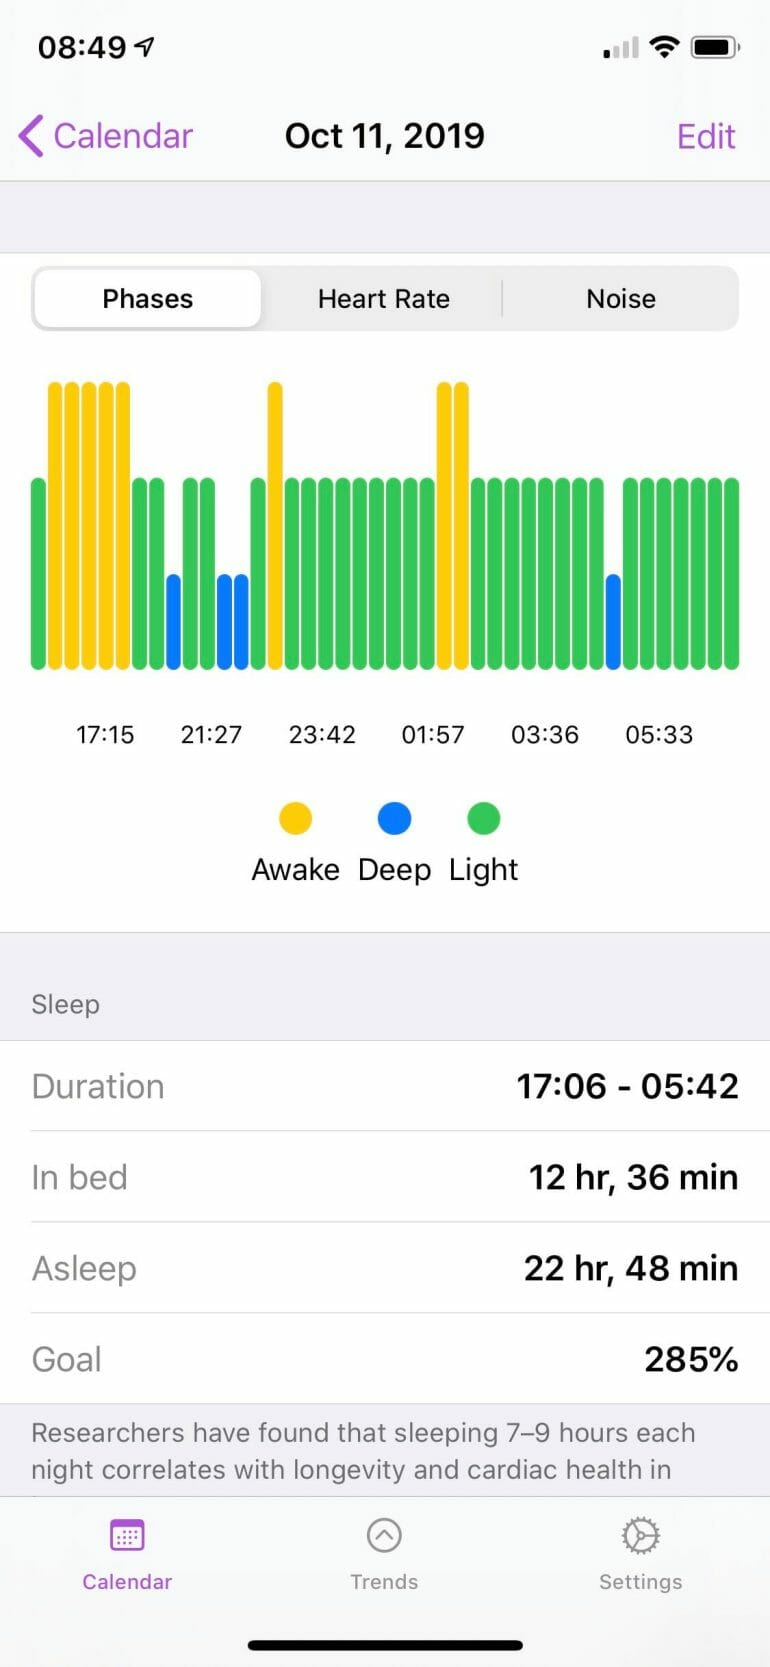 Inaccurate sleep data from NapBot